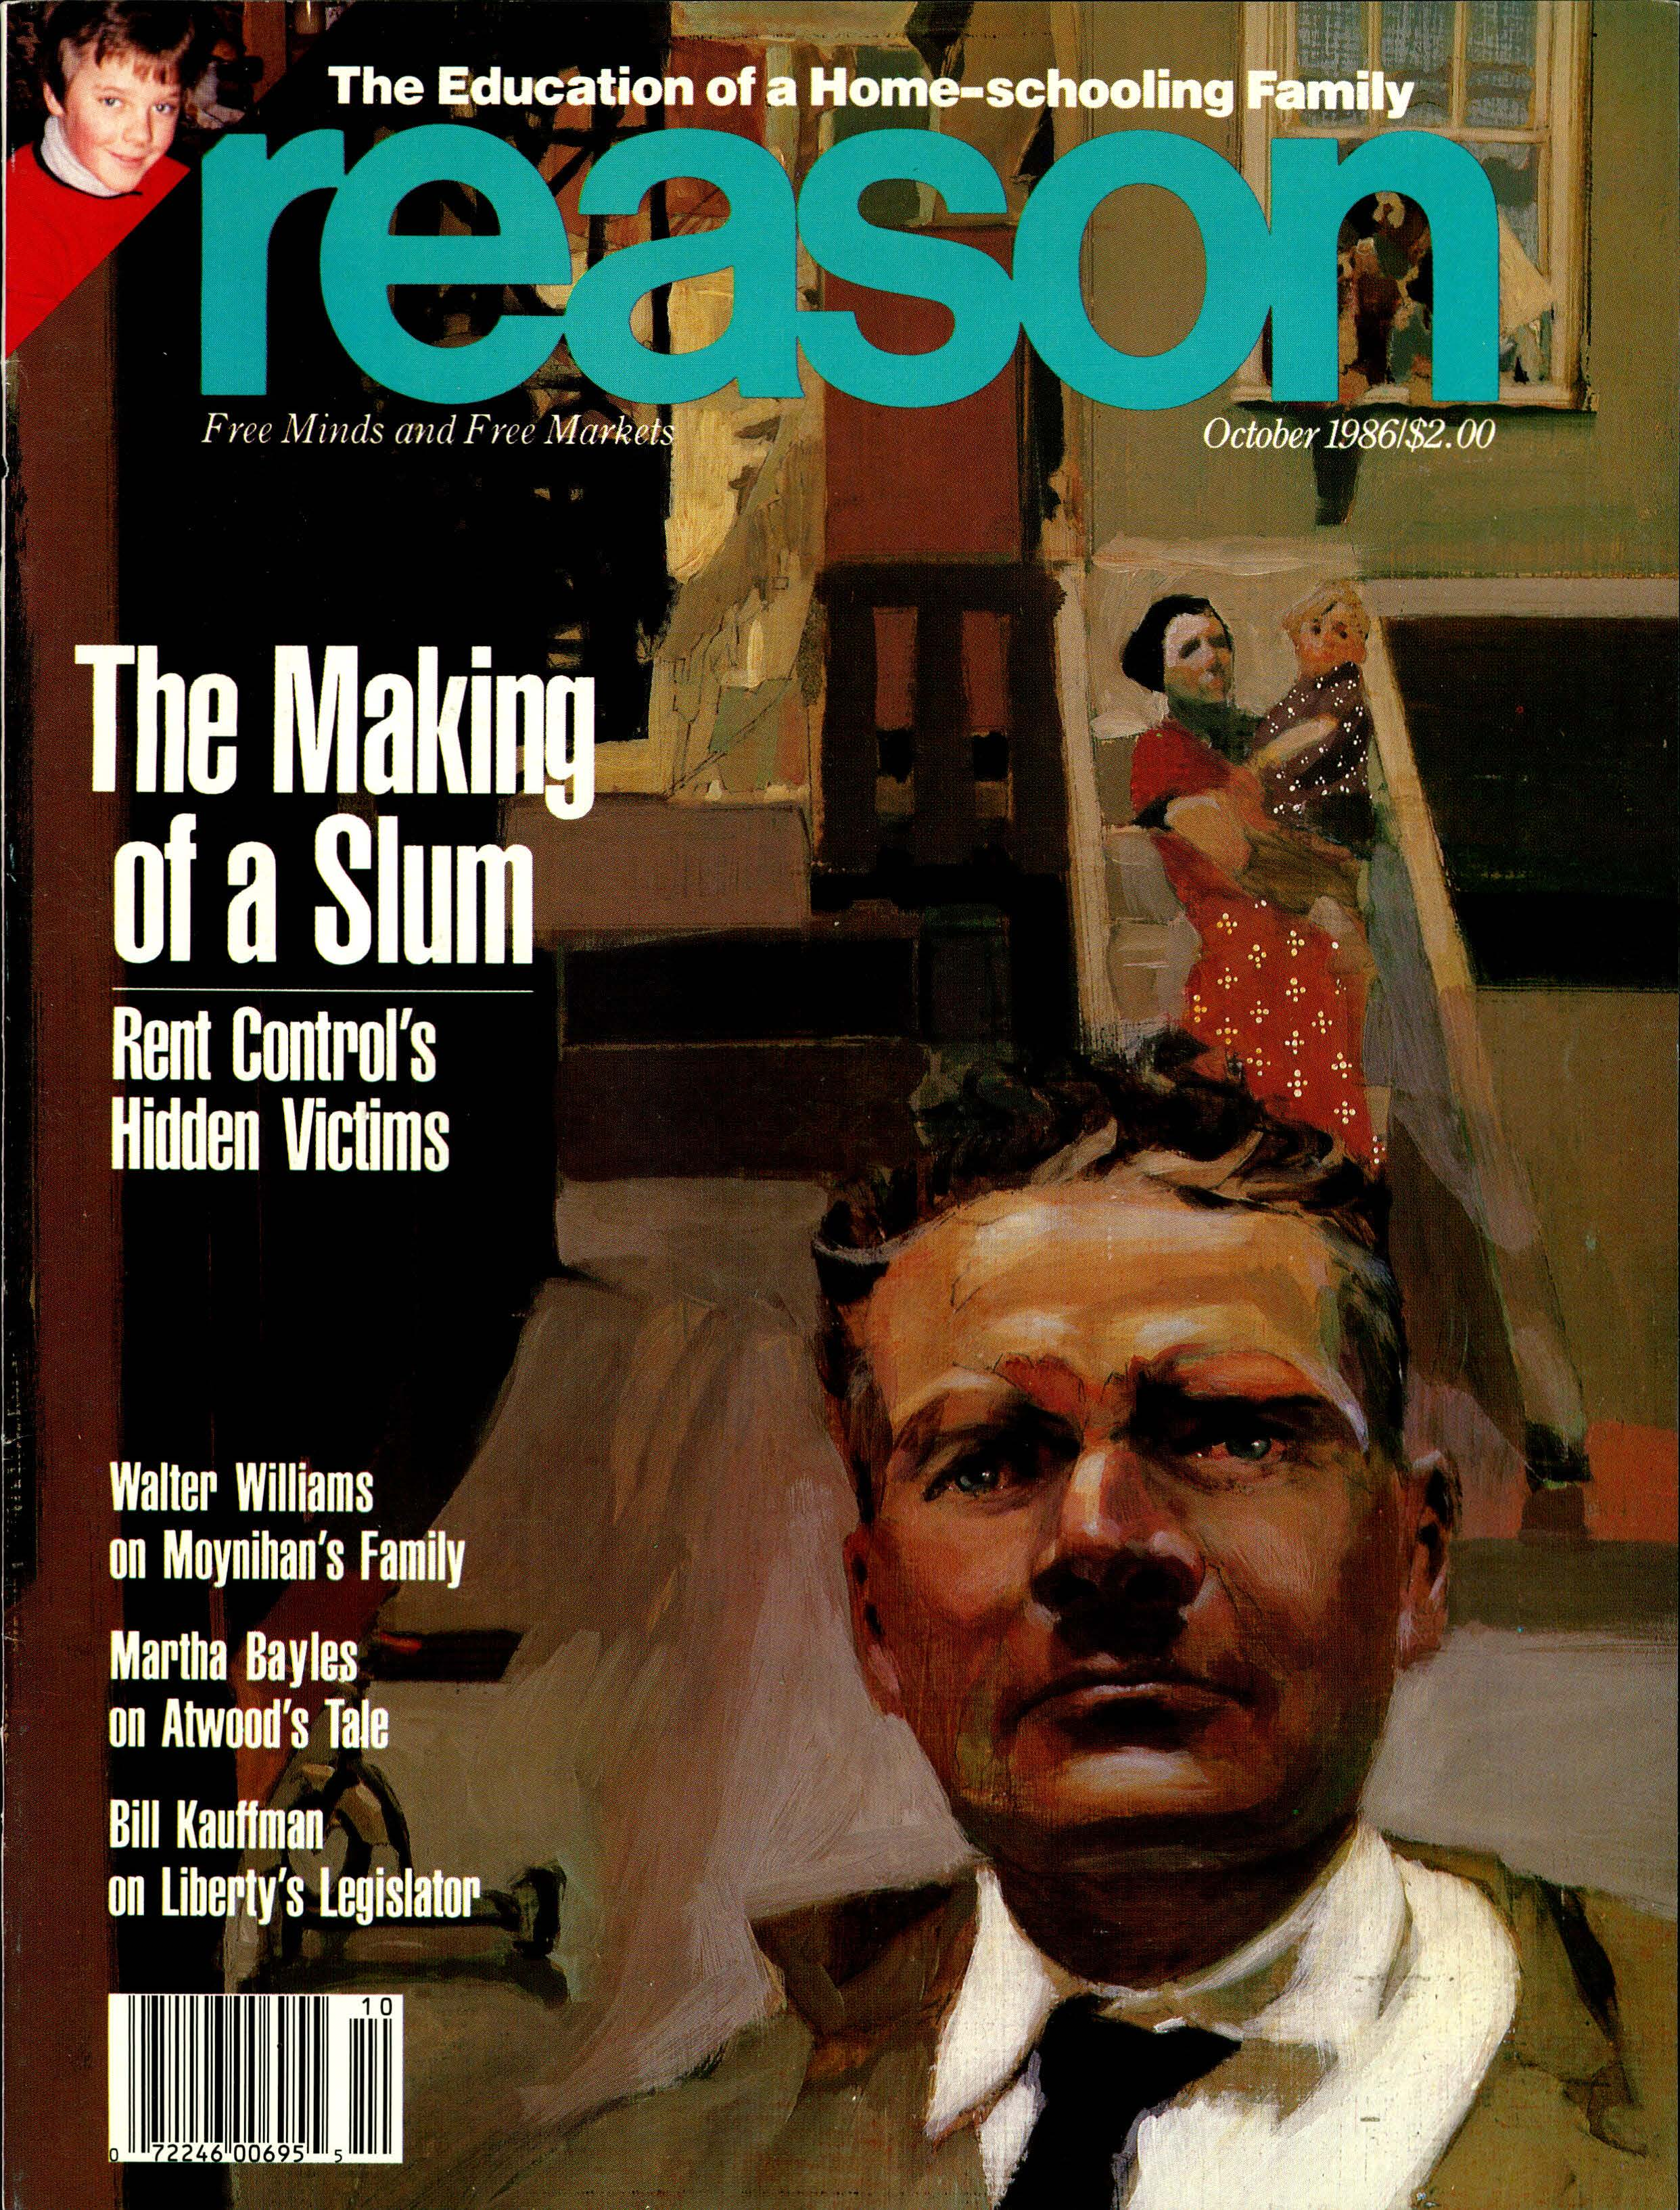 Reason Magazine, October 1986 cover image